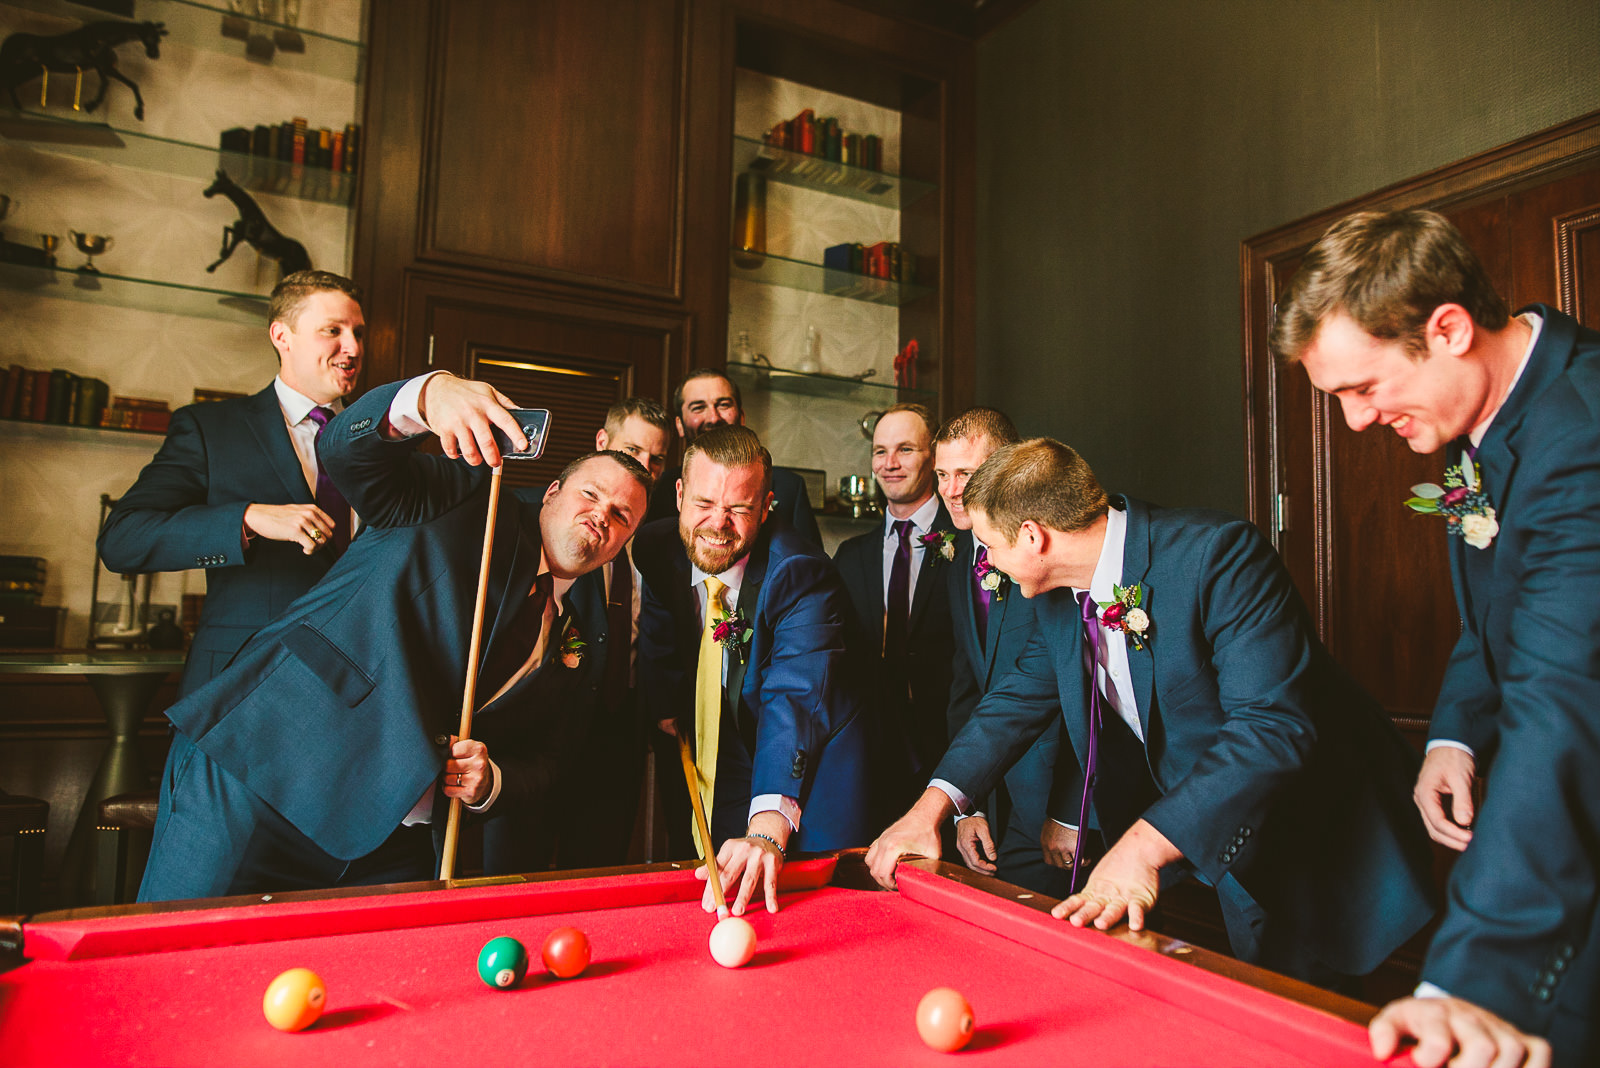 16 groom and groomsmen having fun at hilton wedding - Hilton Chicago Wedding Photographer // Sarah + Aaron